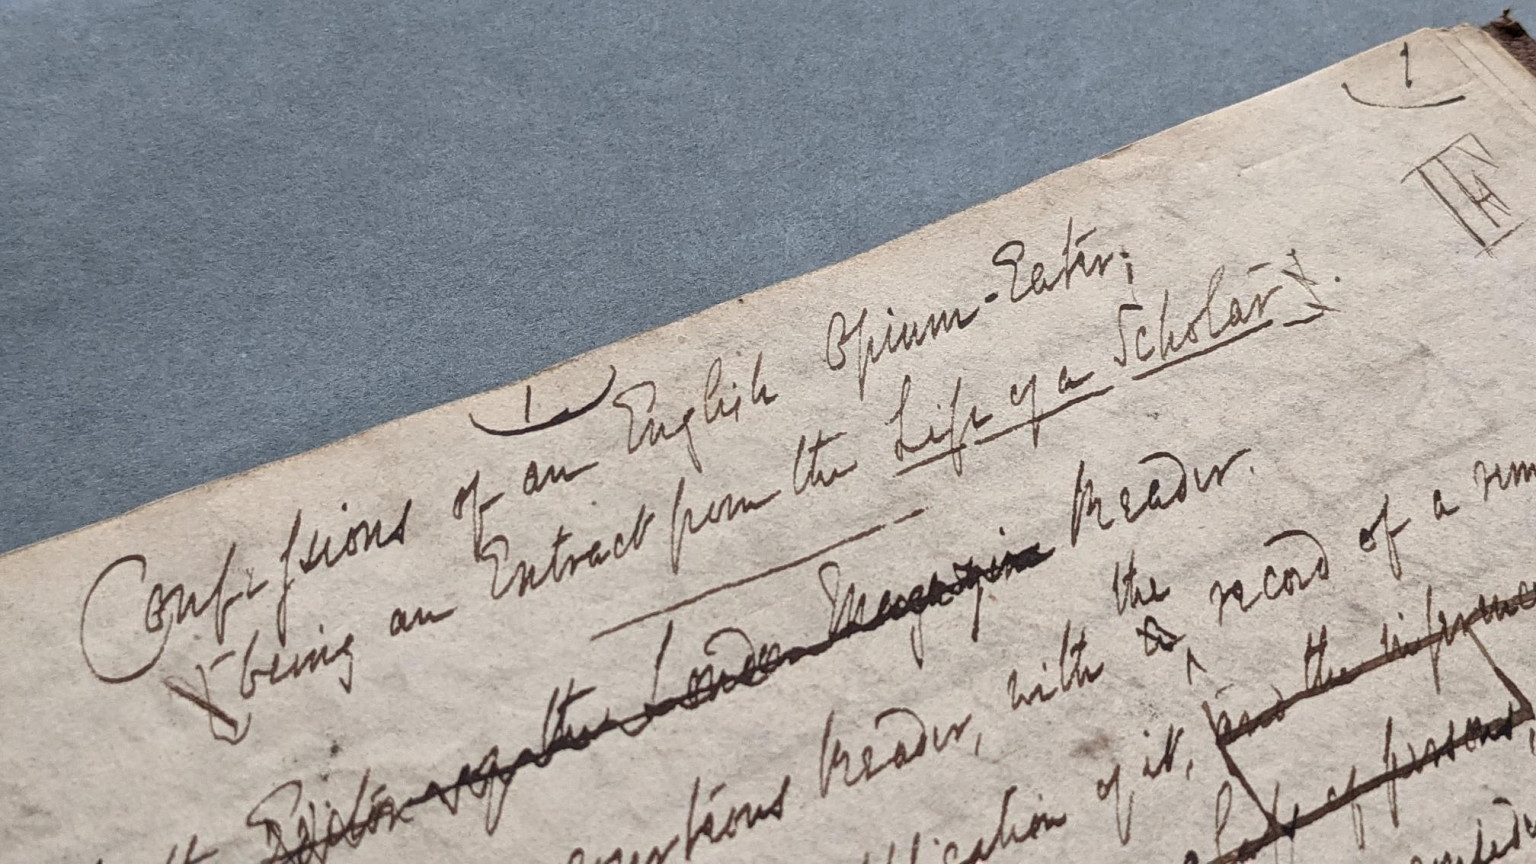 The 1821 manuscript of Confessions of an English Opium-Eater.